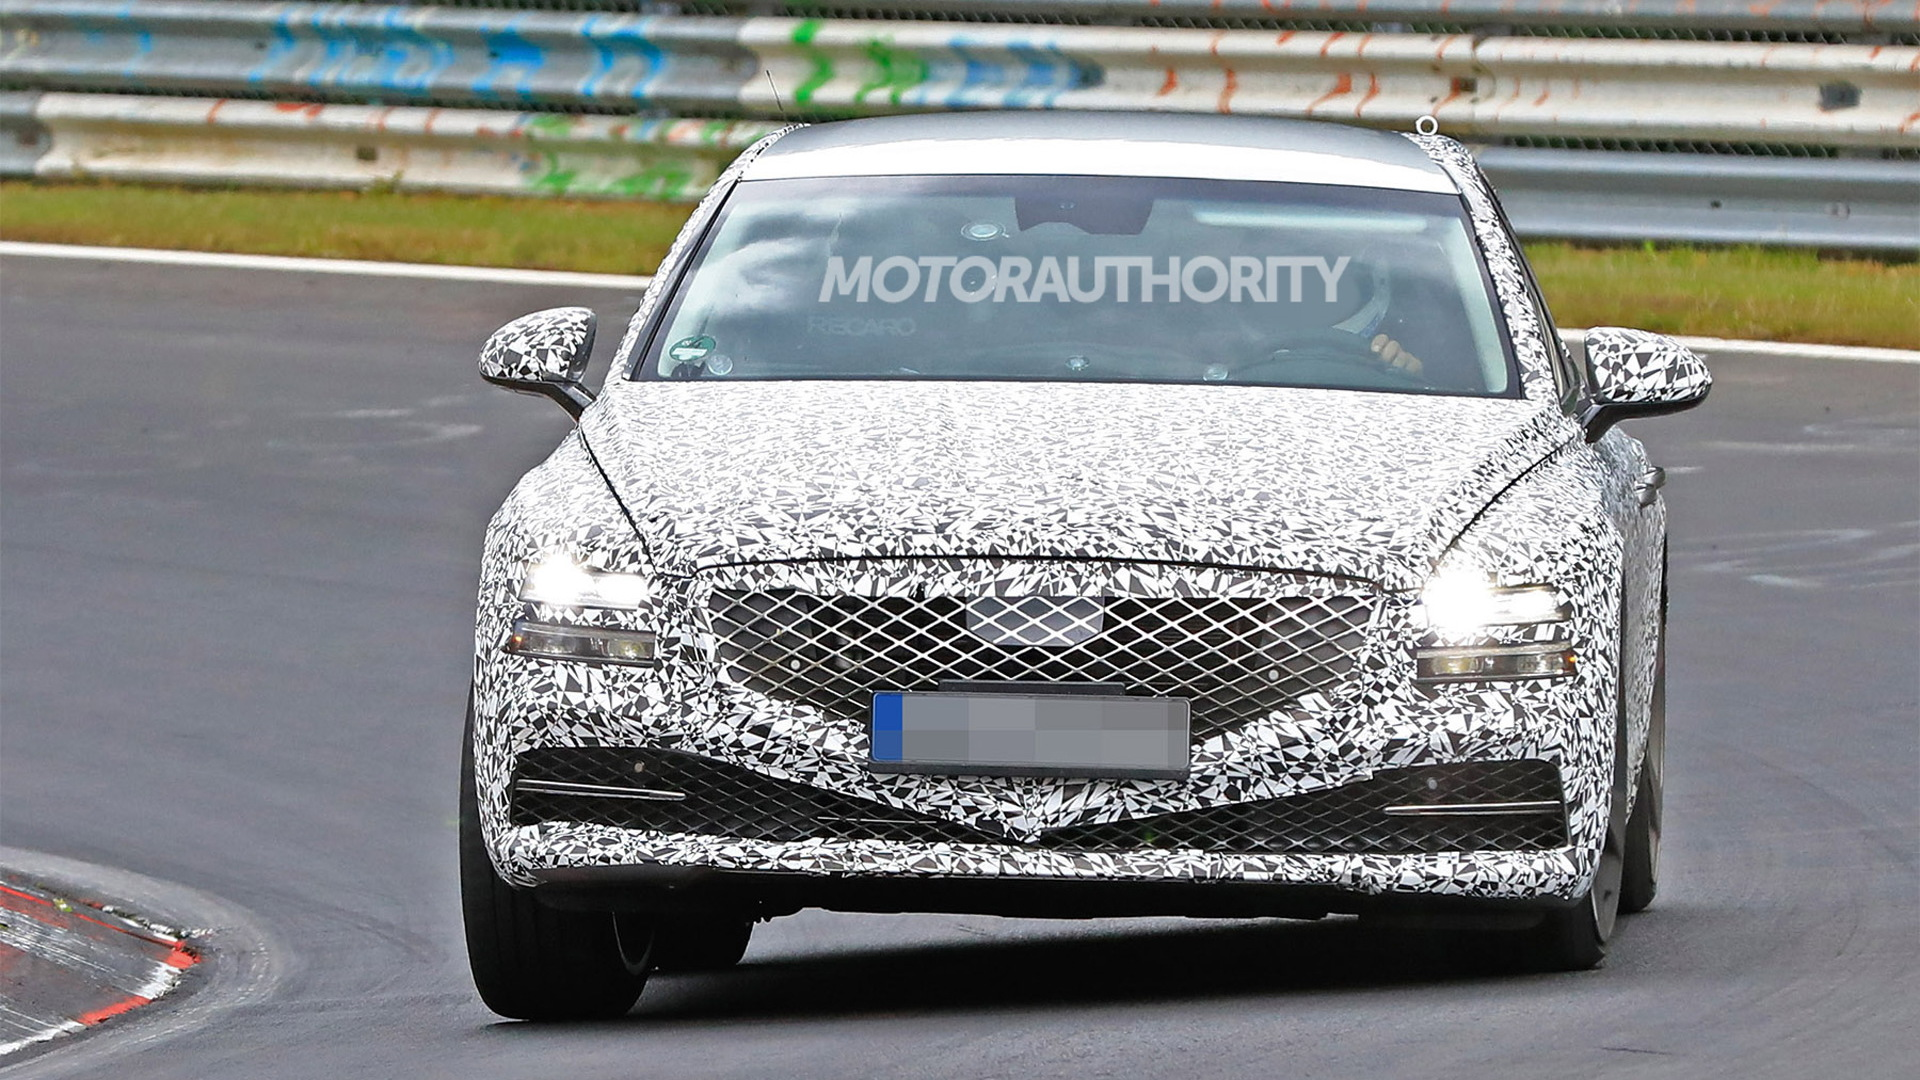 2021 Genesis G80 spy shots - Photo credit: S. Baldauf/SB-Medien